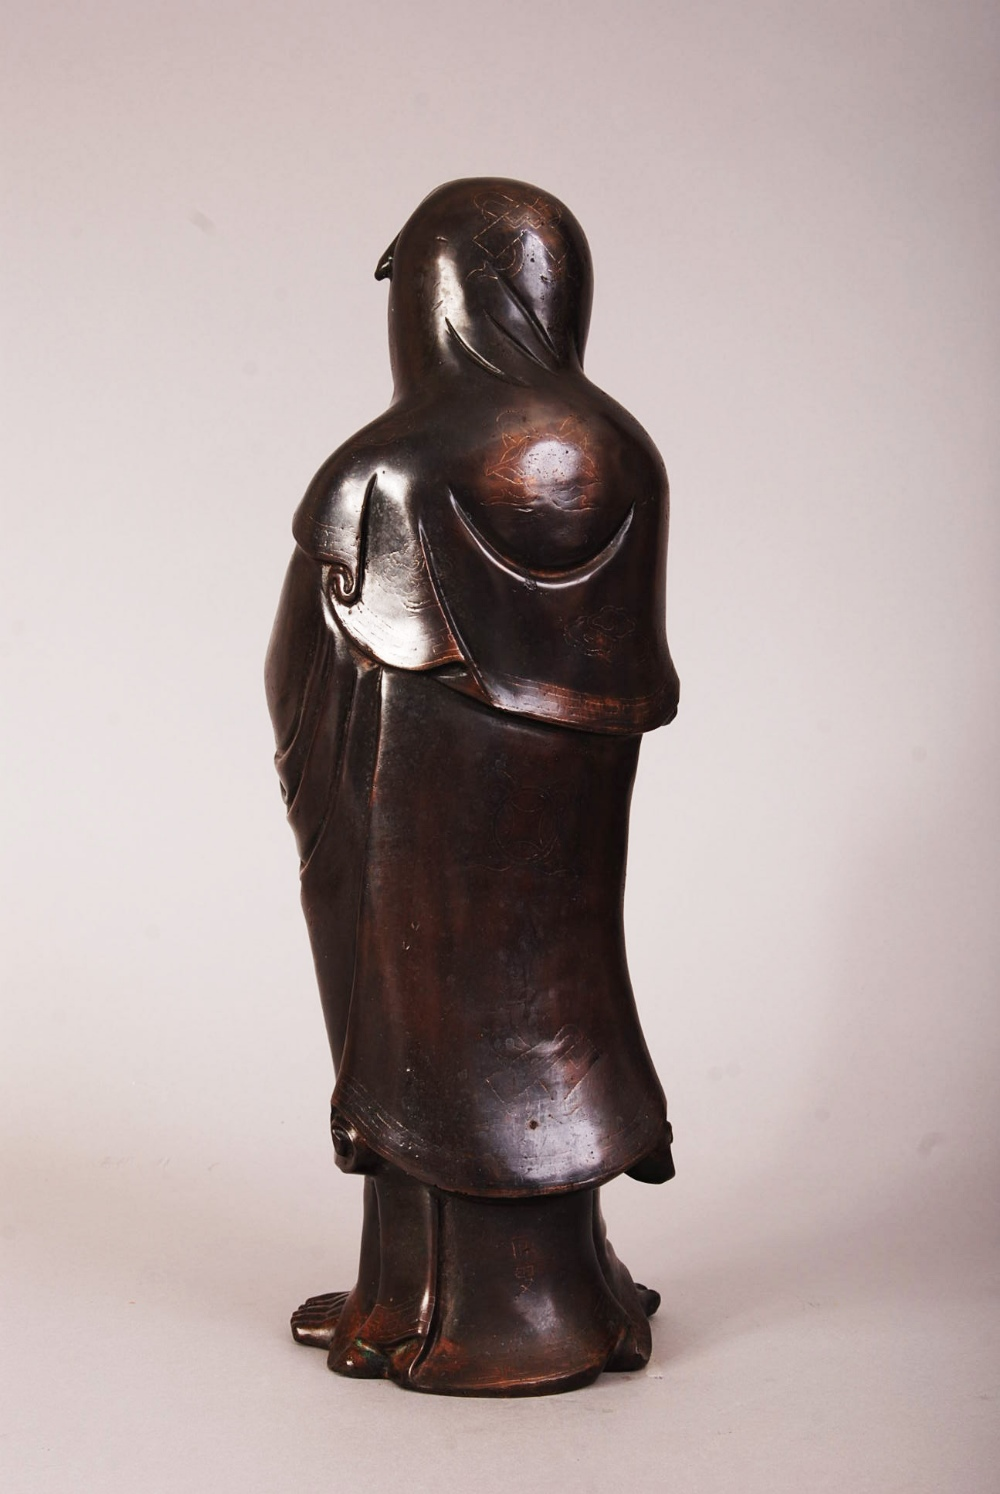 Lot 57 - Chinese silver-inlaid bronze figure of Damo, modelled standing barefoot, wearing loose robes